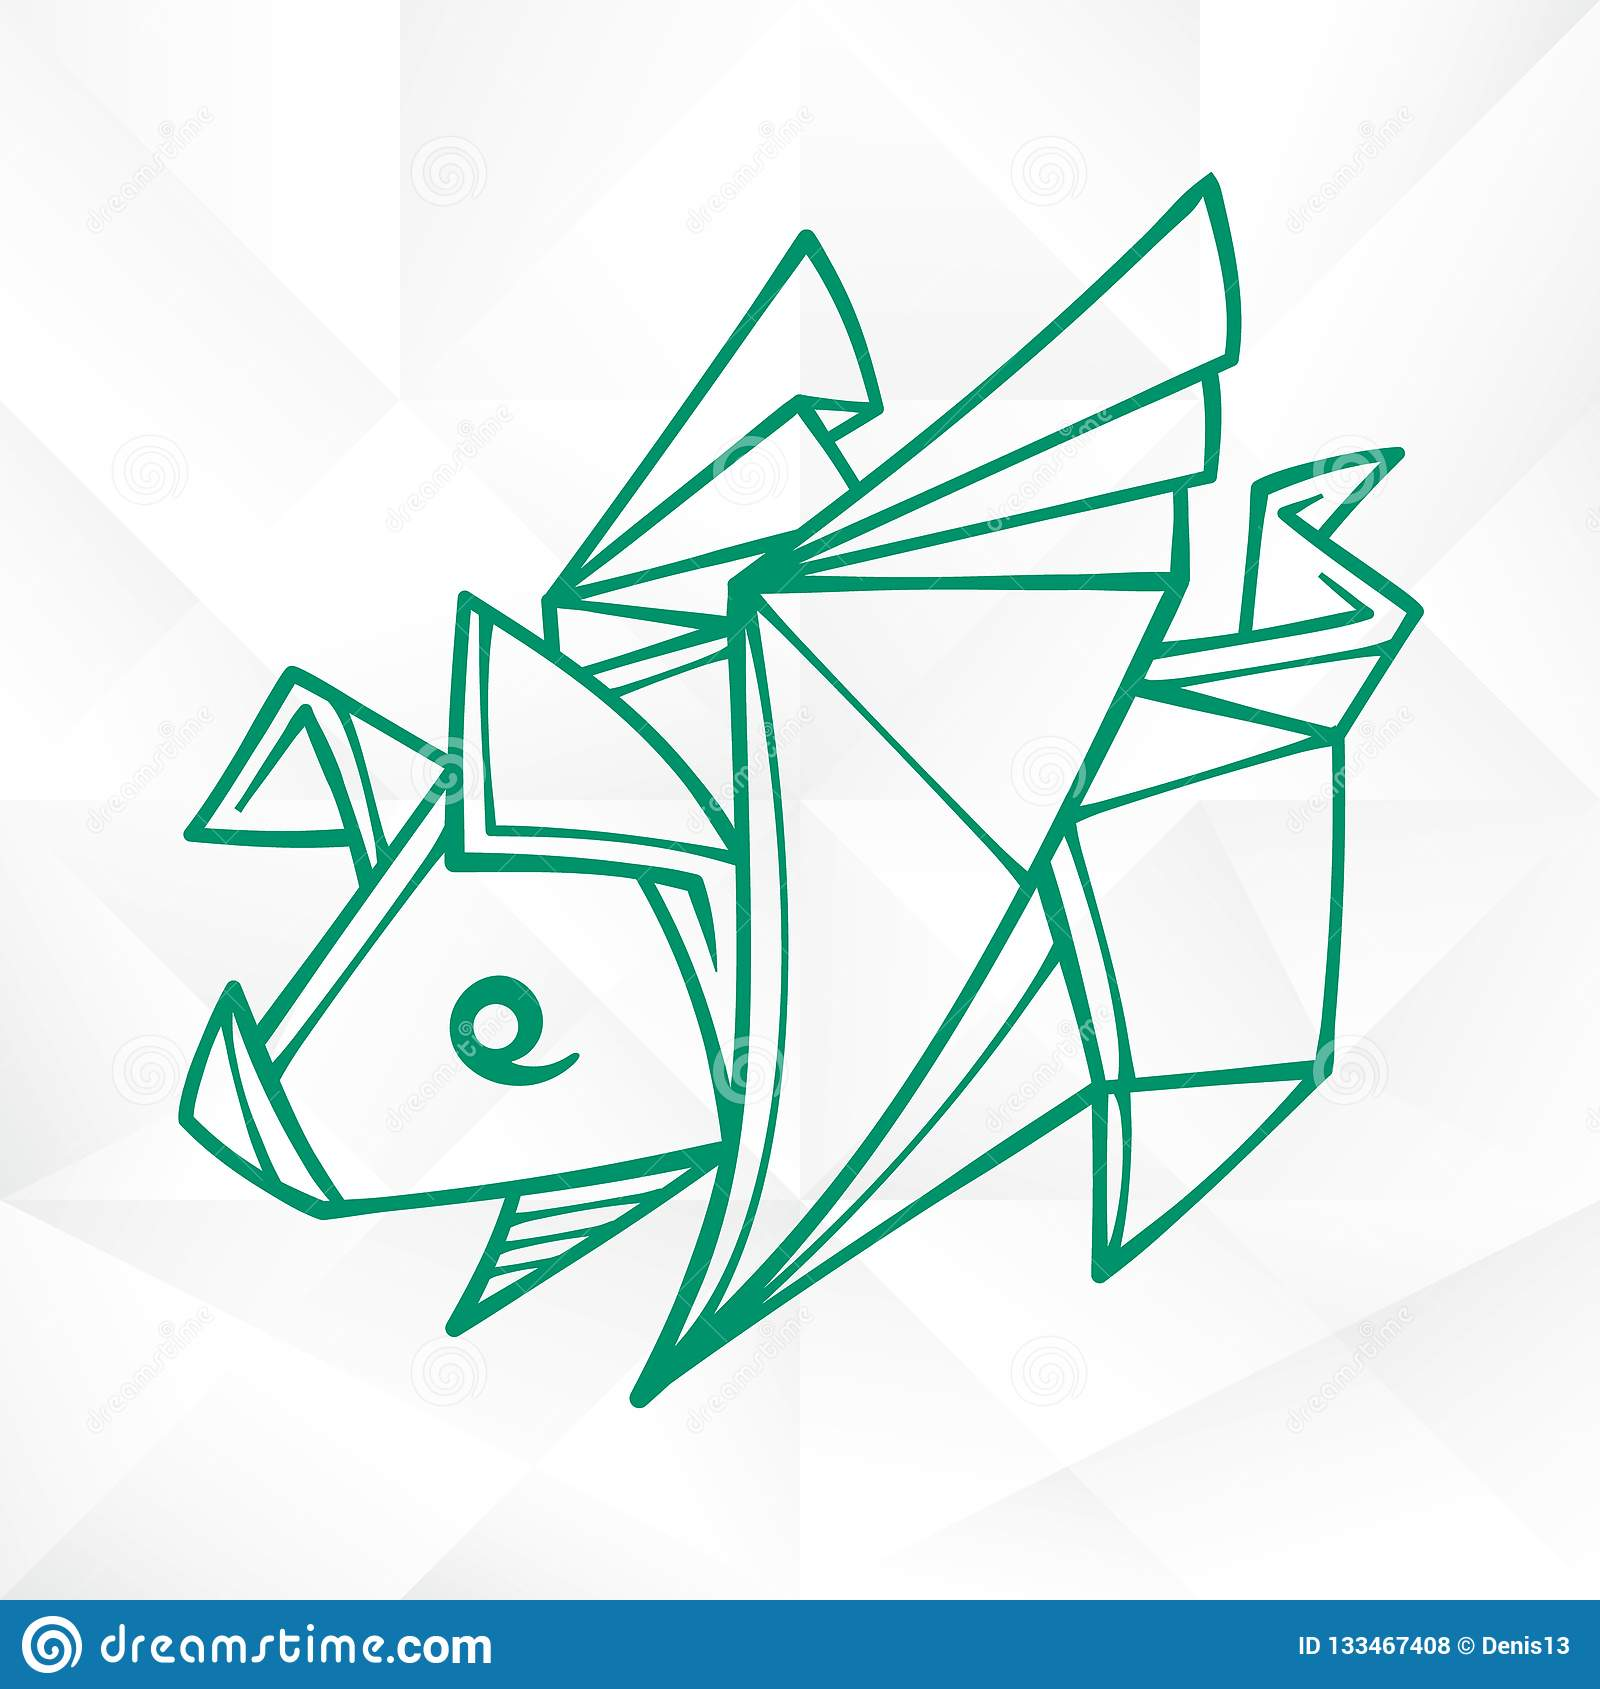 Graphic Origami Flying Pig. Geometric Icon of Paper Piglet with Wings